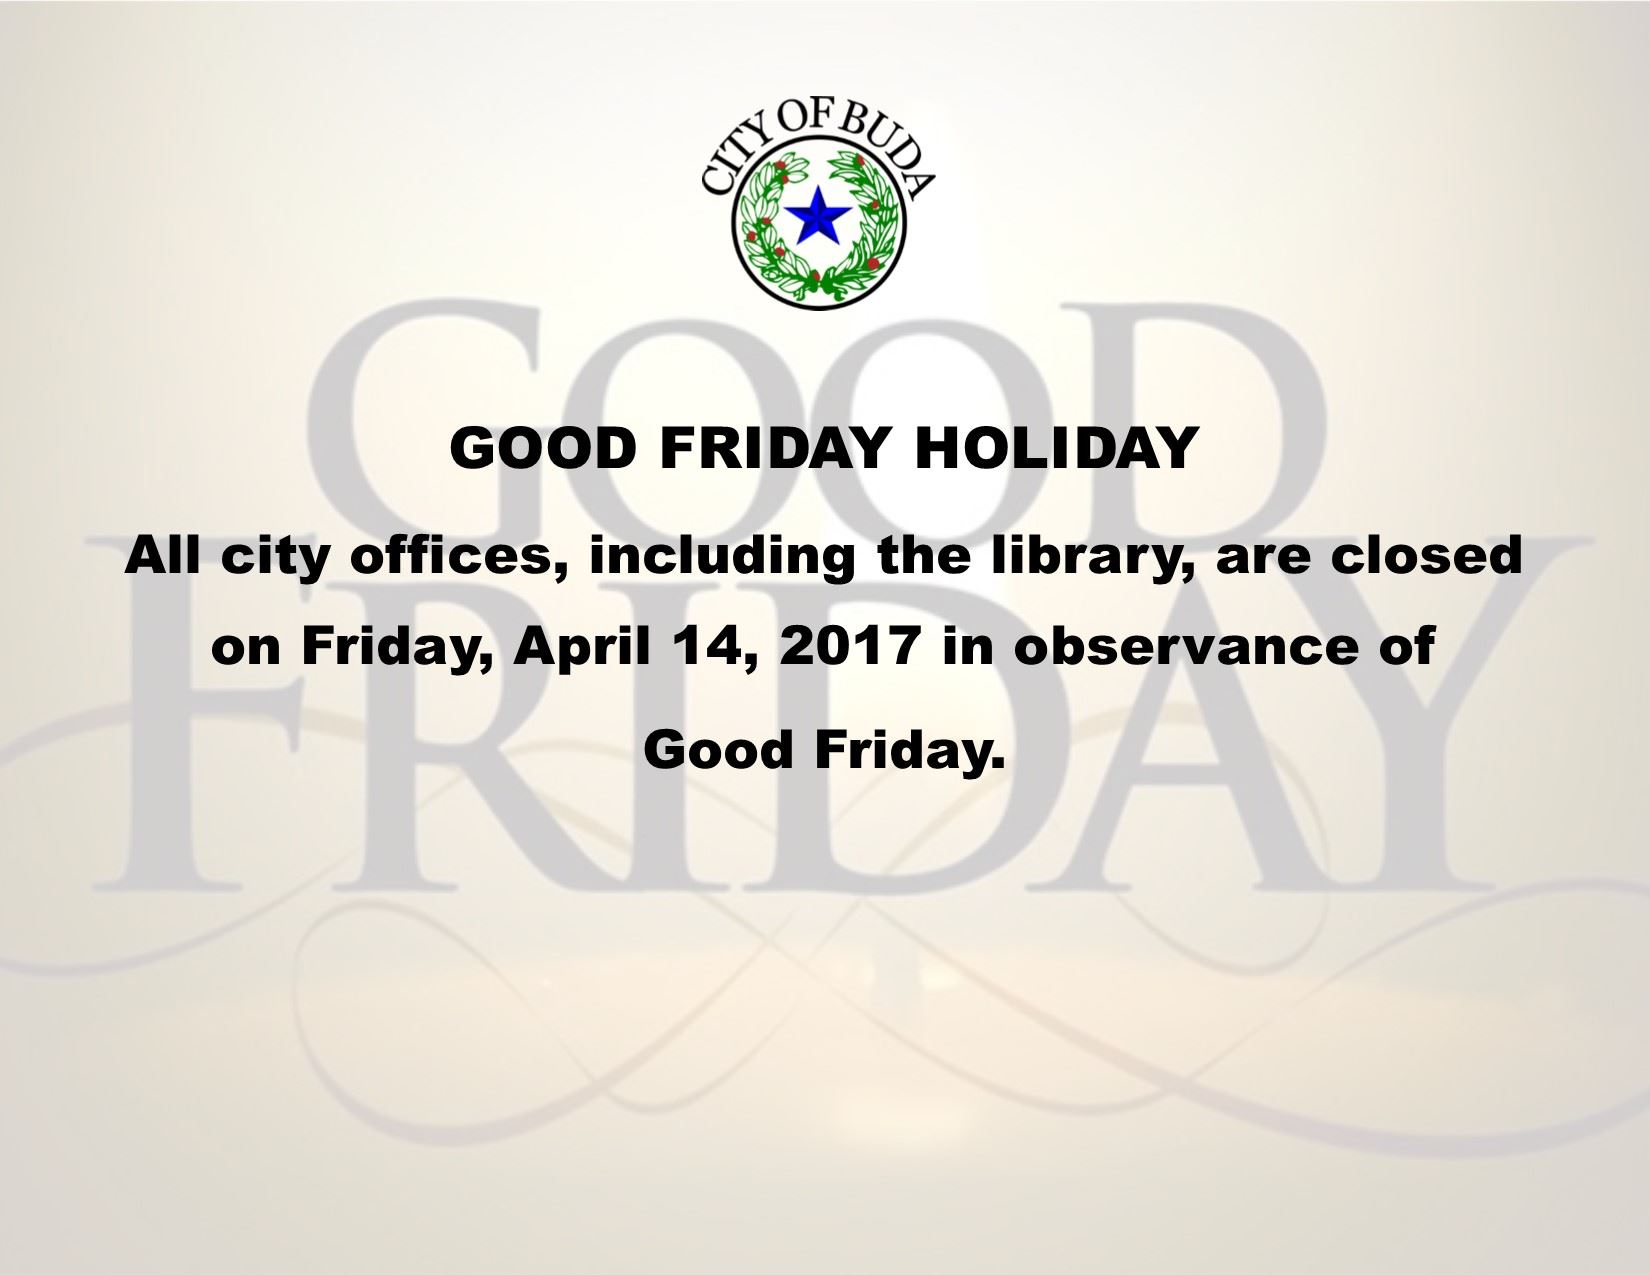 Good Friday Holiday